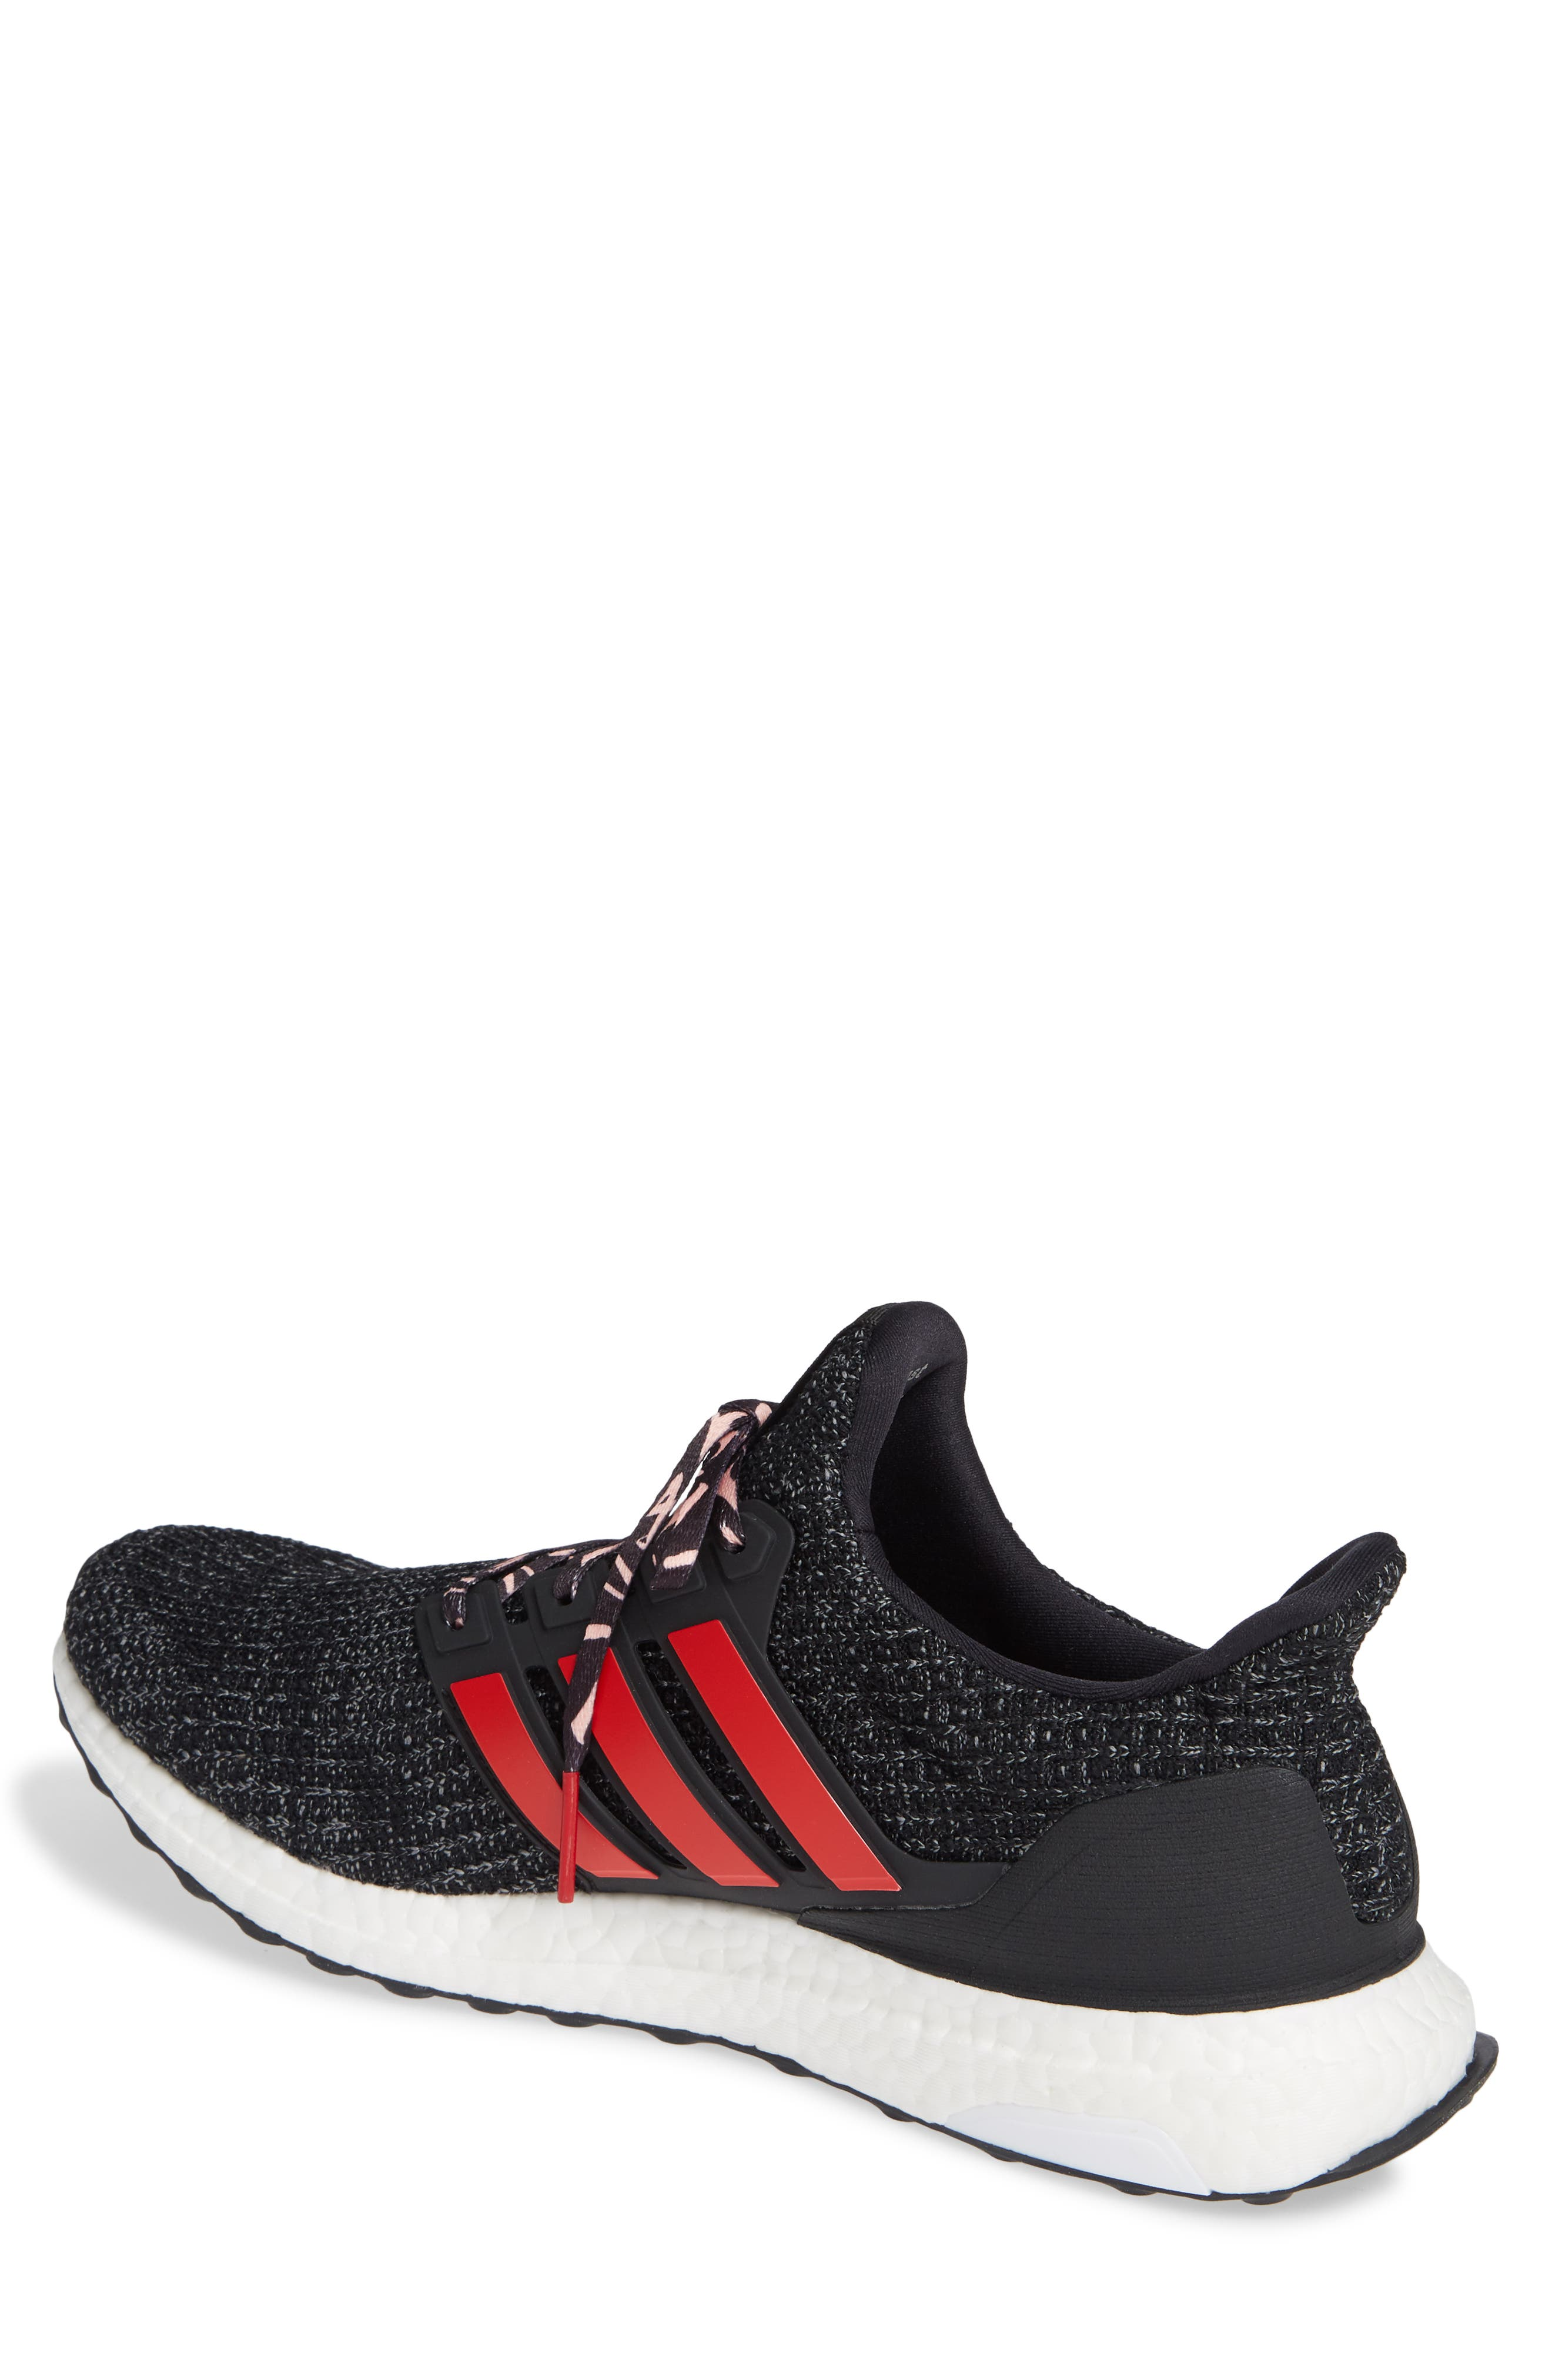 'UltraBoost' Running Shoe,                             Alternate thumbnail 2, color,                             CORE BLACK/ SCARLET/ GREY